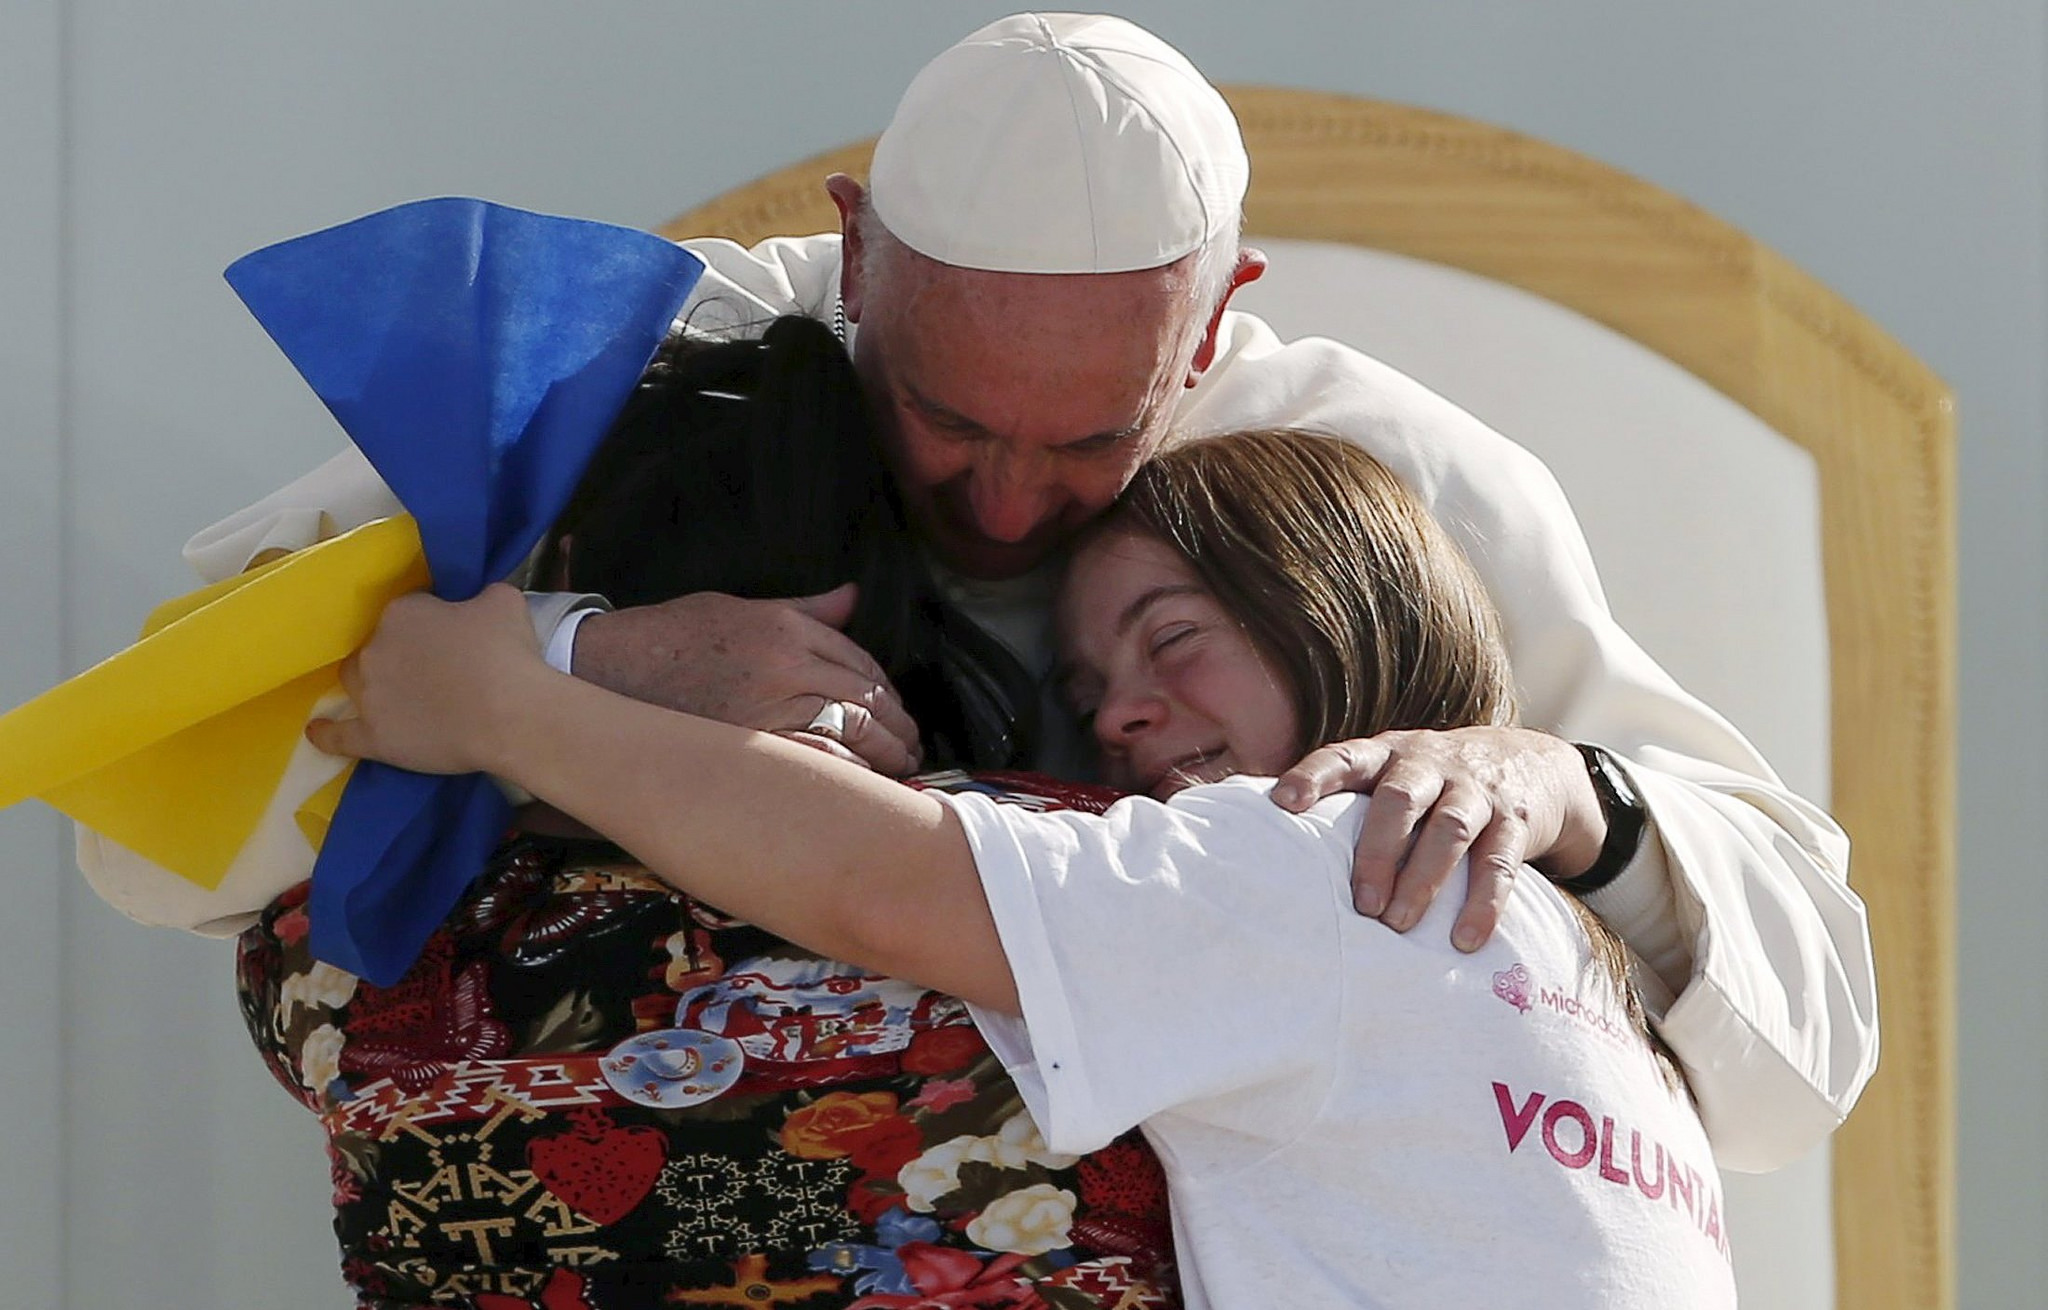 Pope Francis hugging two girls during Youth Days in Krakow.